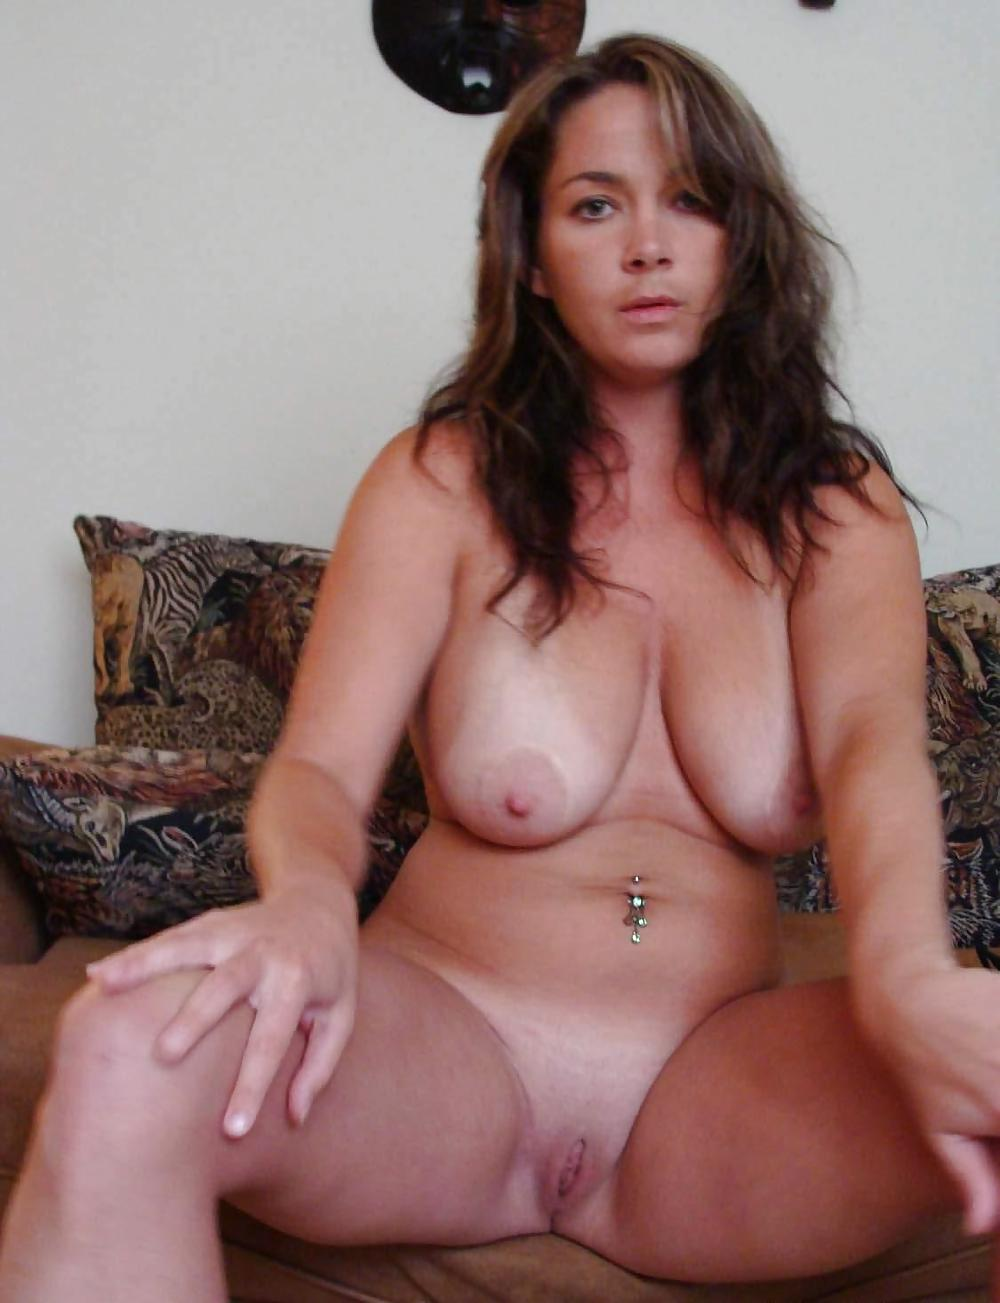 Chubby older mexican women naked